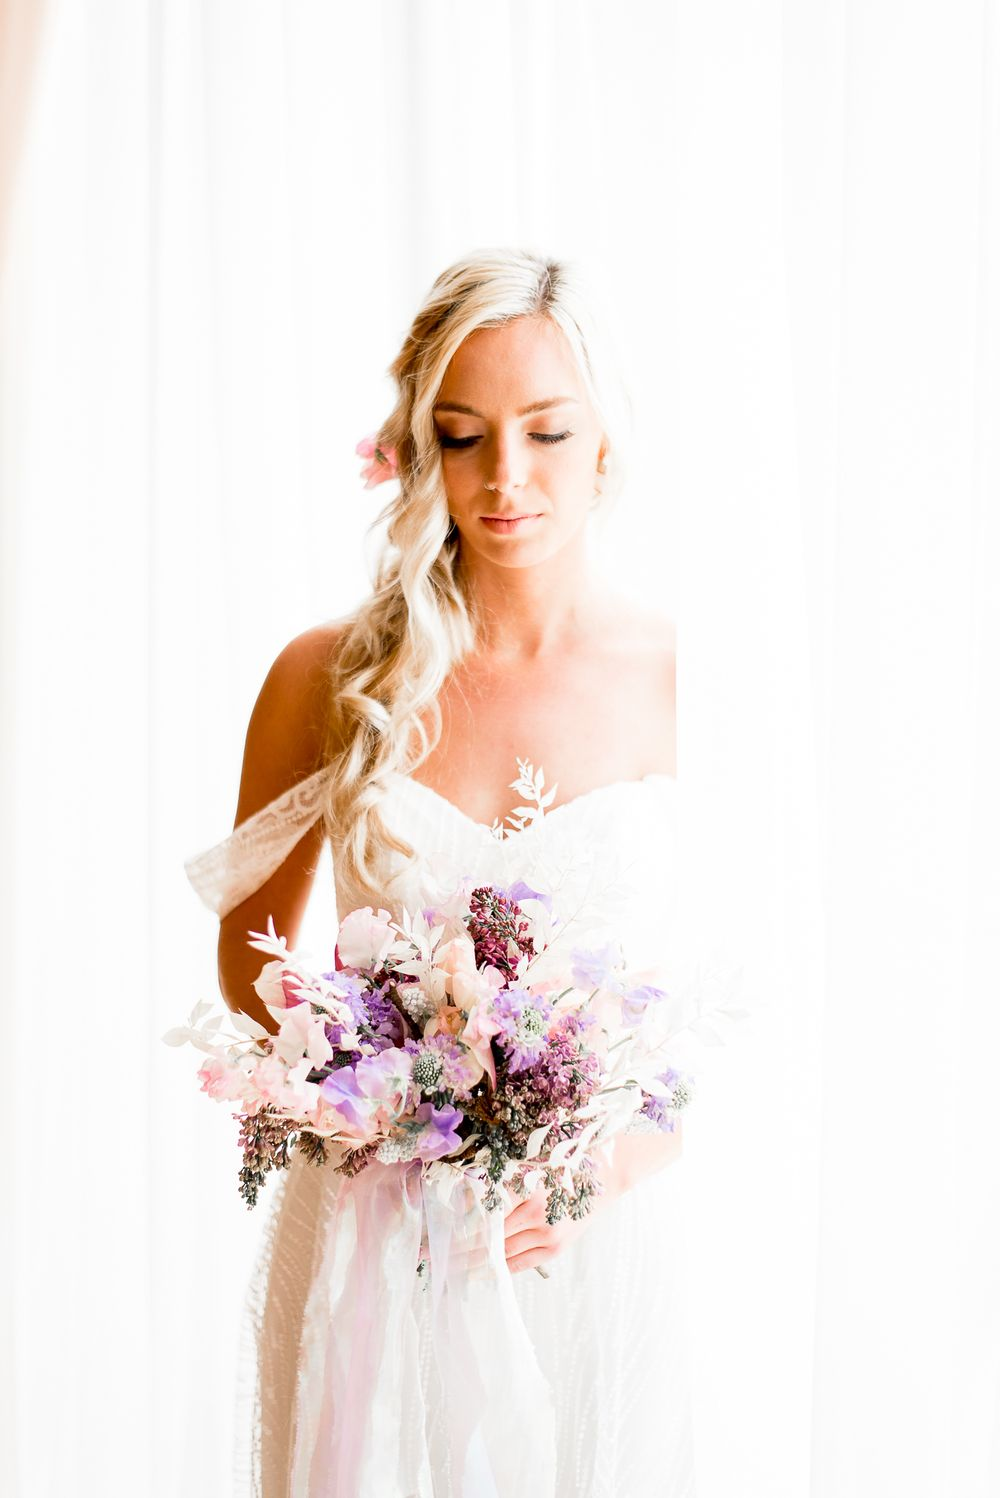 blonde bride with braided hair looking at her colorful purple and pink spring wedding bouquet